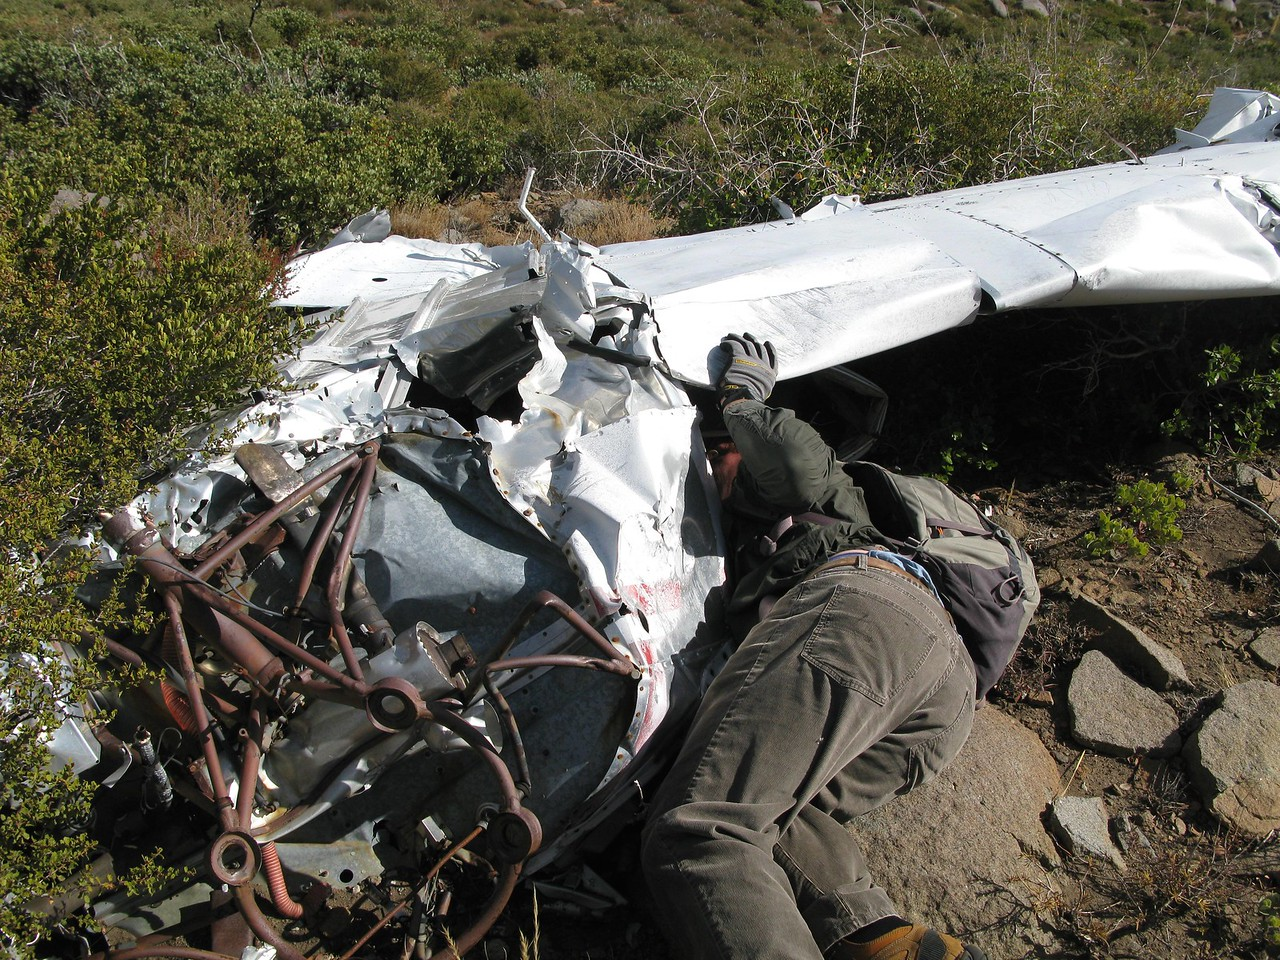 As we examined the wreckage and the site, it was becoming clear that some salvaging of parts had taken place over the past 41 years since the accident. <br /> <br /> Missing were the pilot/passenger seats, instrument panel, engine, propeller, and landing gear components.